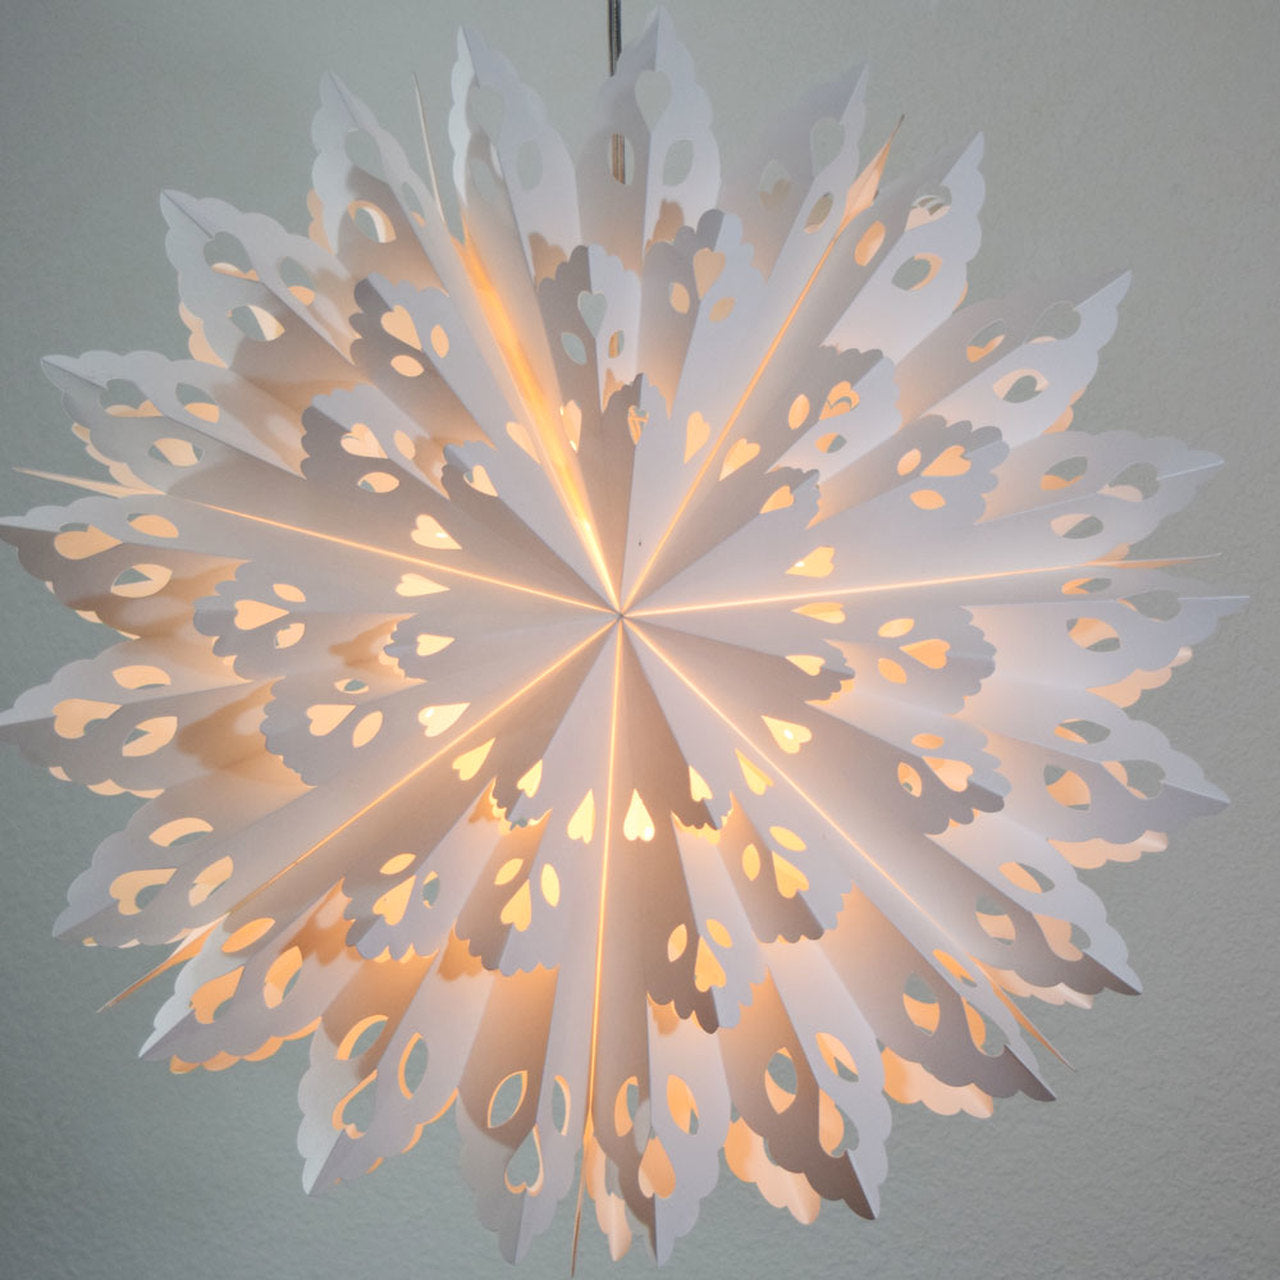 "3-PACK + Cord | White Winter Wreath 24"" Pizzelle Designer Illuminated Paper Star Lanterns and Lamp Cord Hanging Decorations - PaperLanternStore.com - Paper Lanterns, Decor, Party Lights & More"